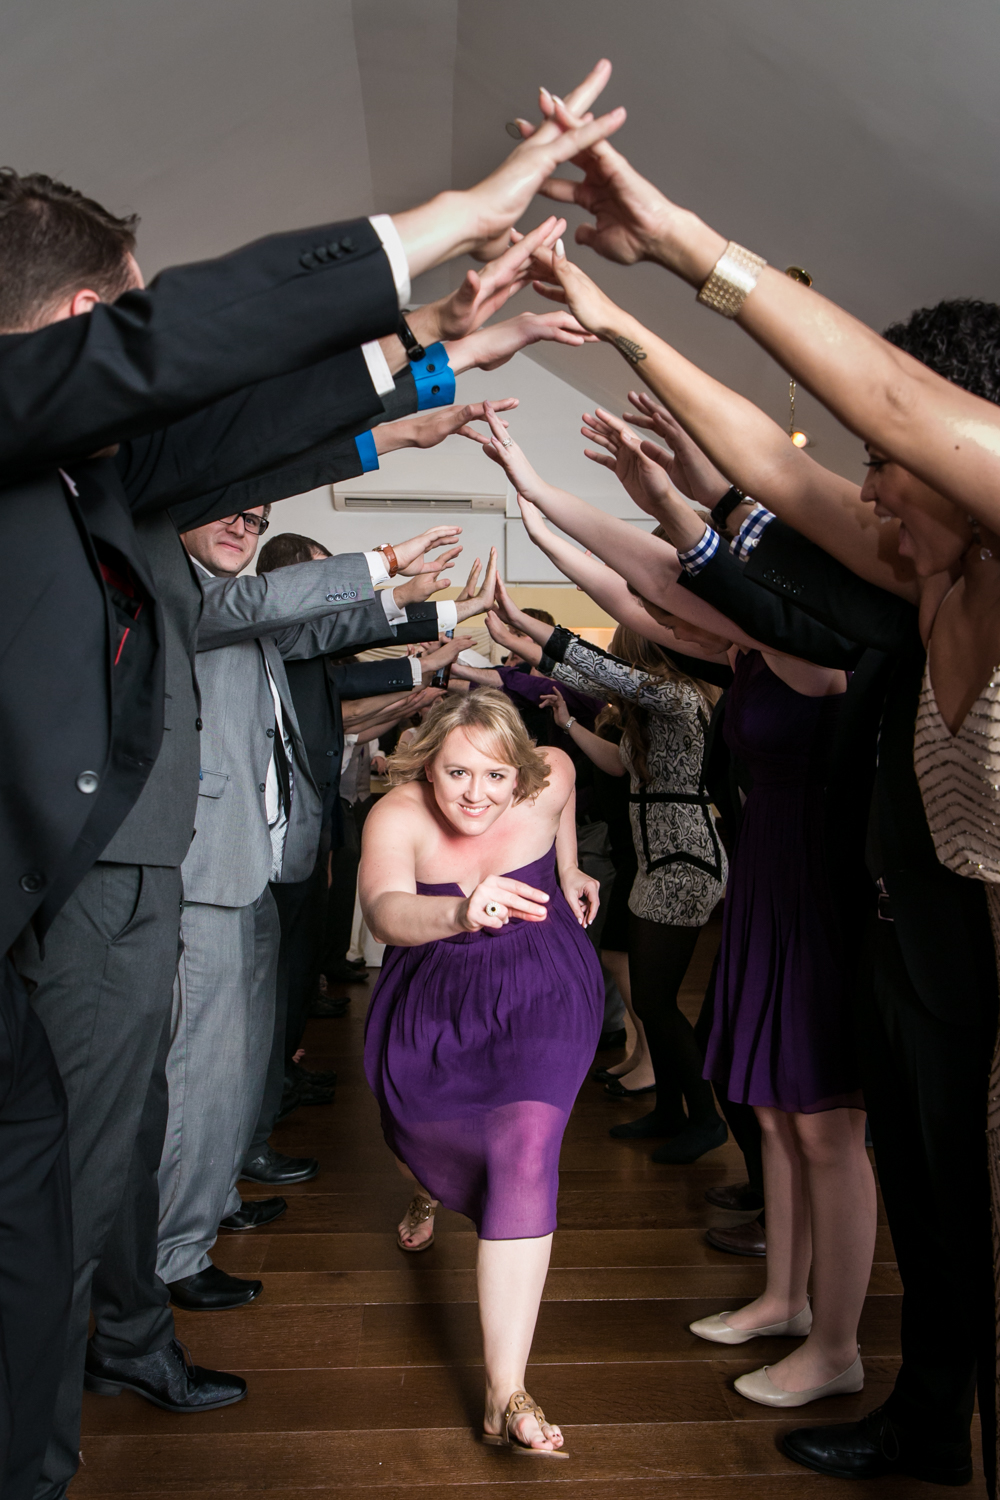 Female guest wearing purple dress running under arch of other guests' arms